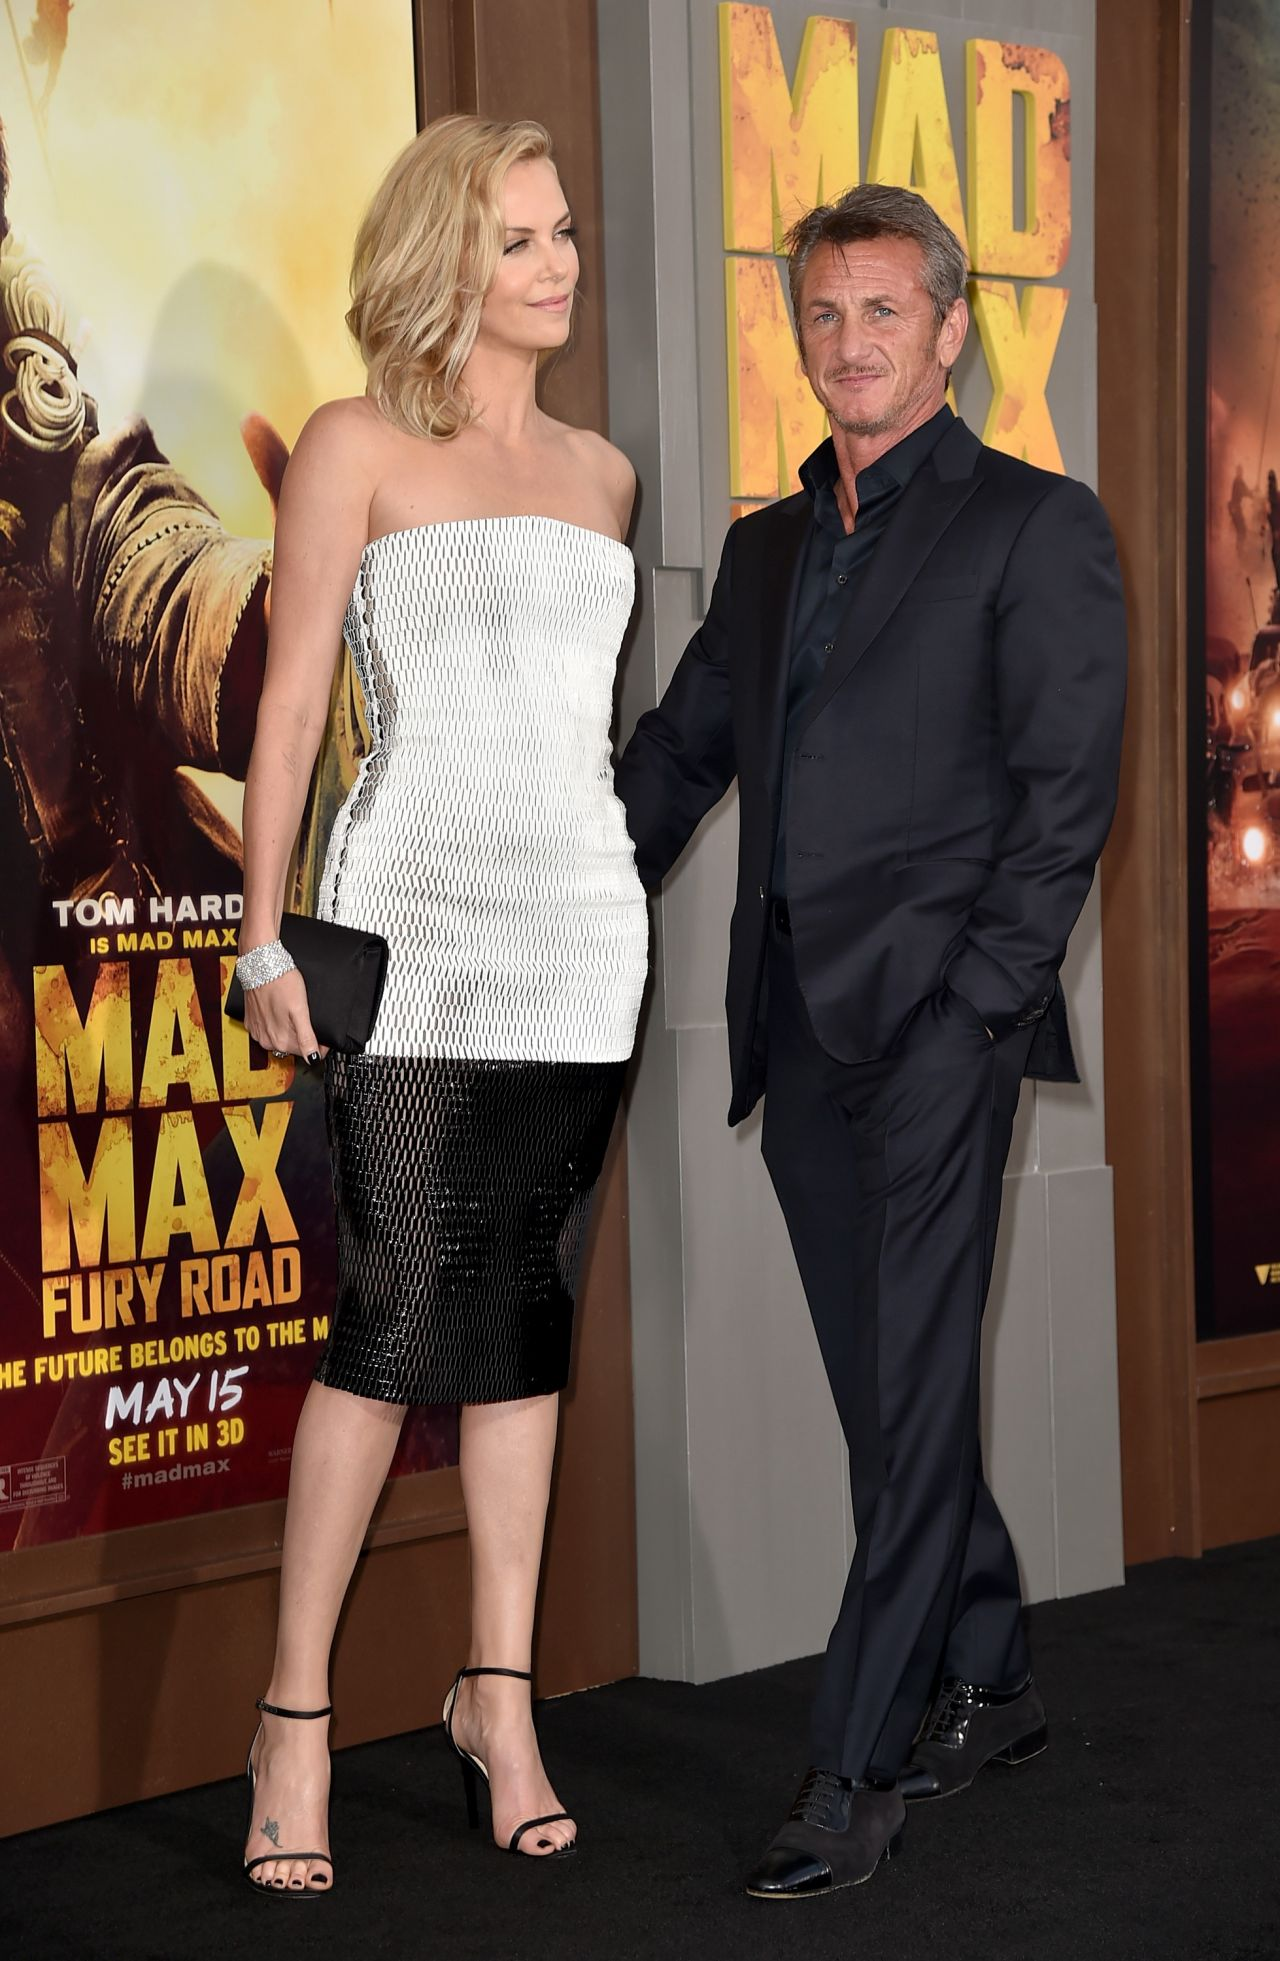 charlize-theron-mad-max-fury-road-premiere-in-hollywood_5